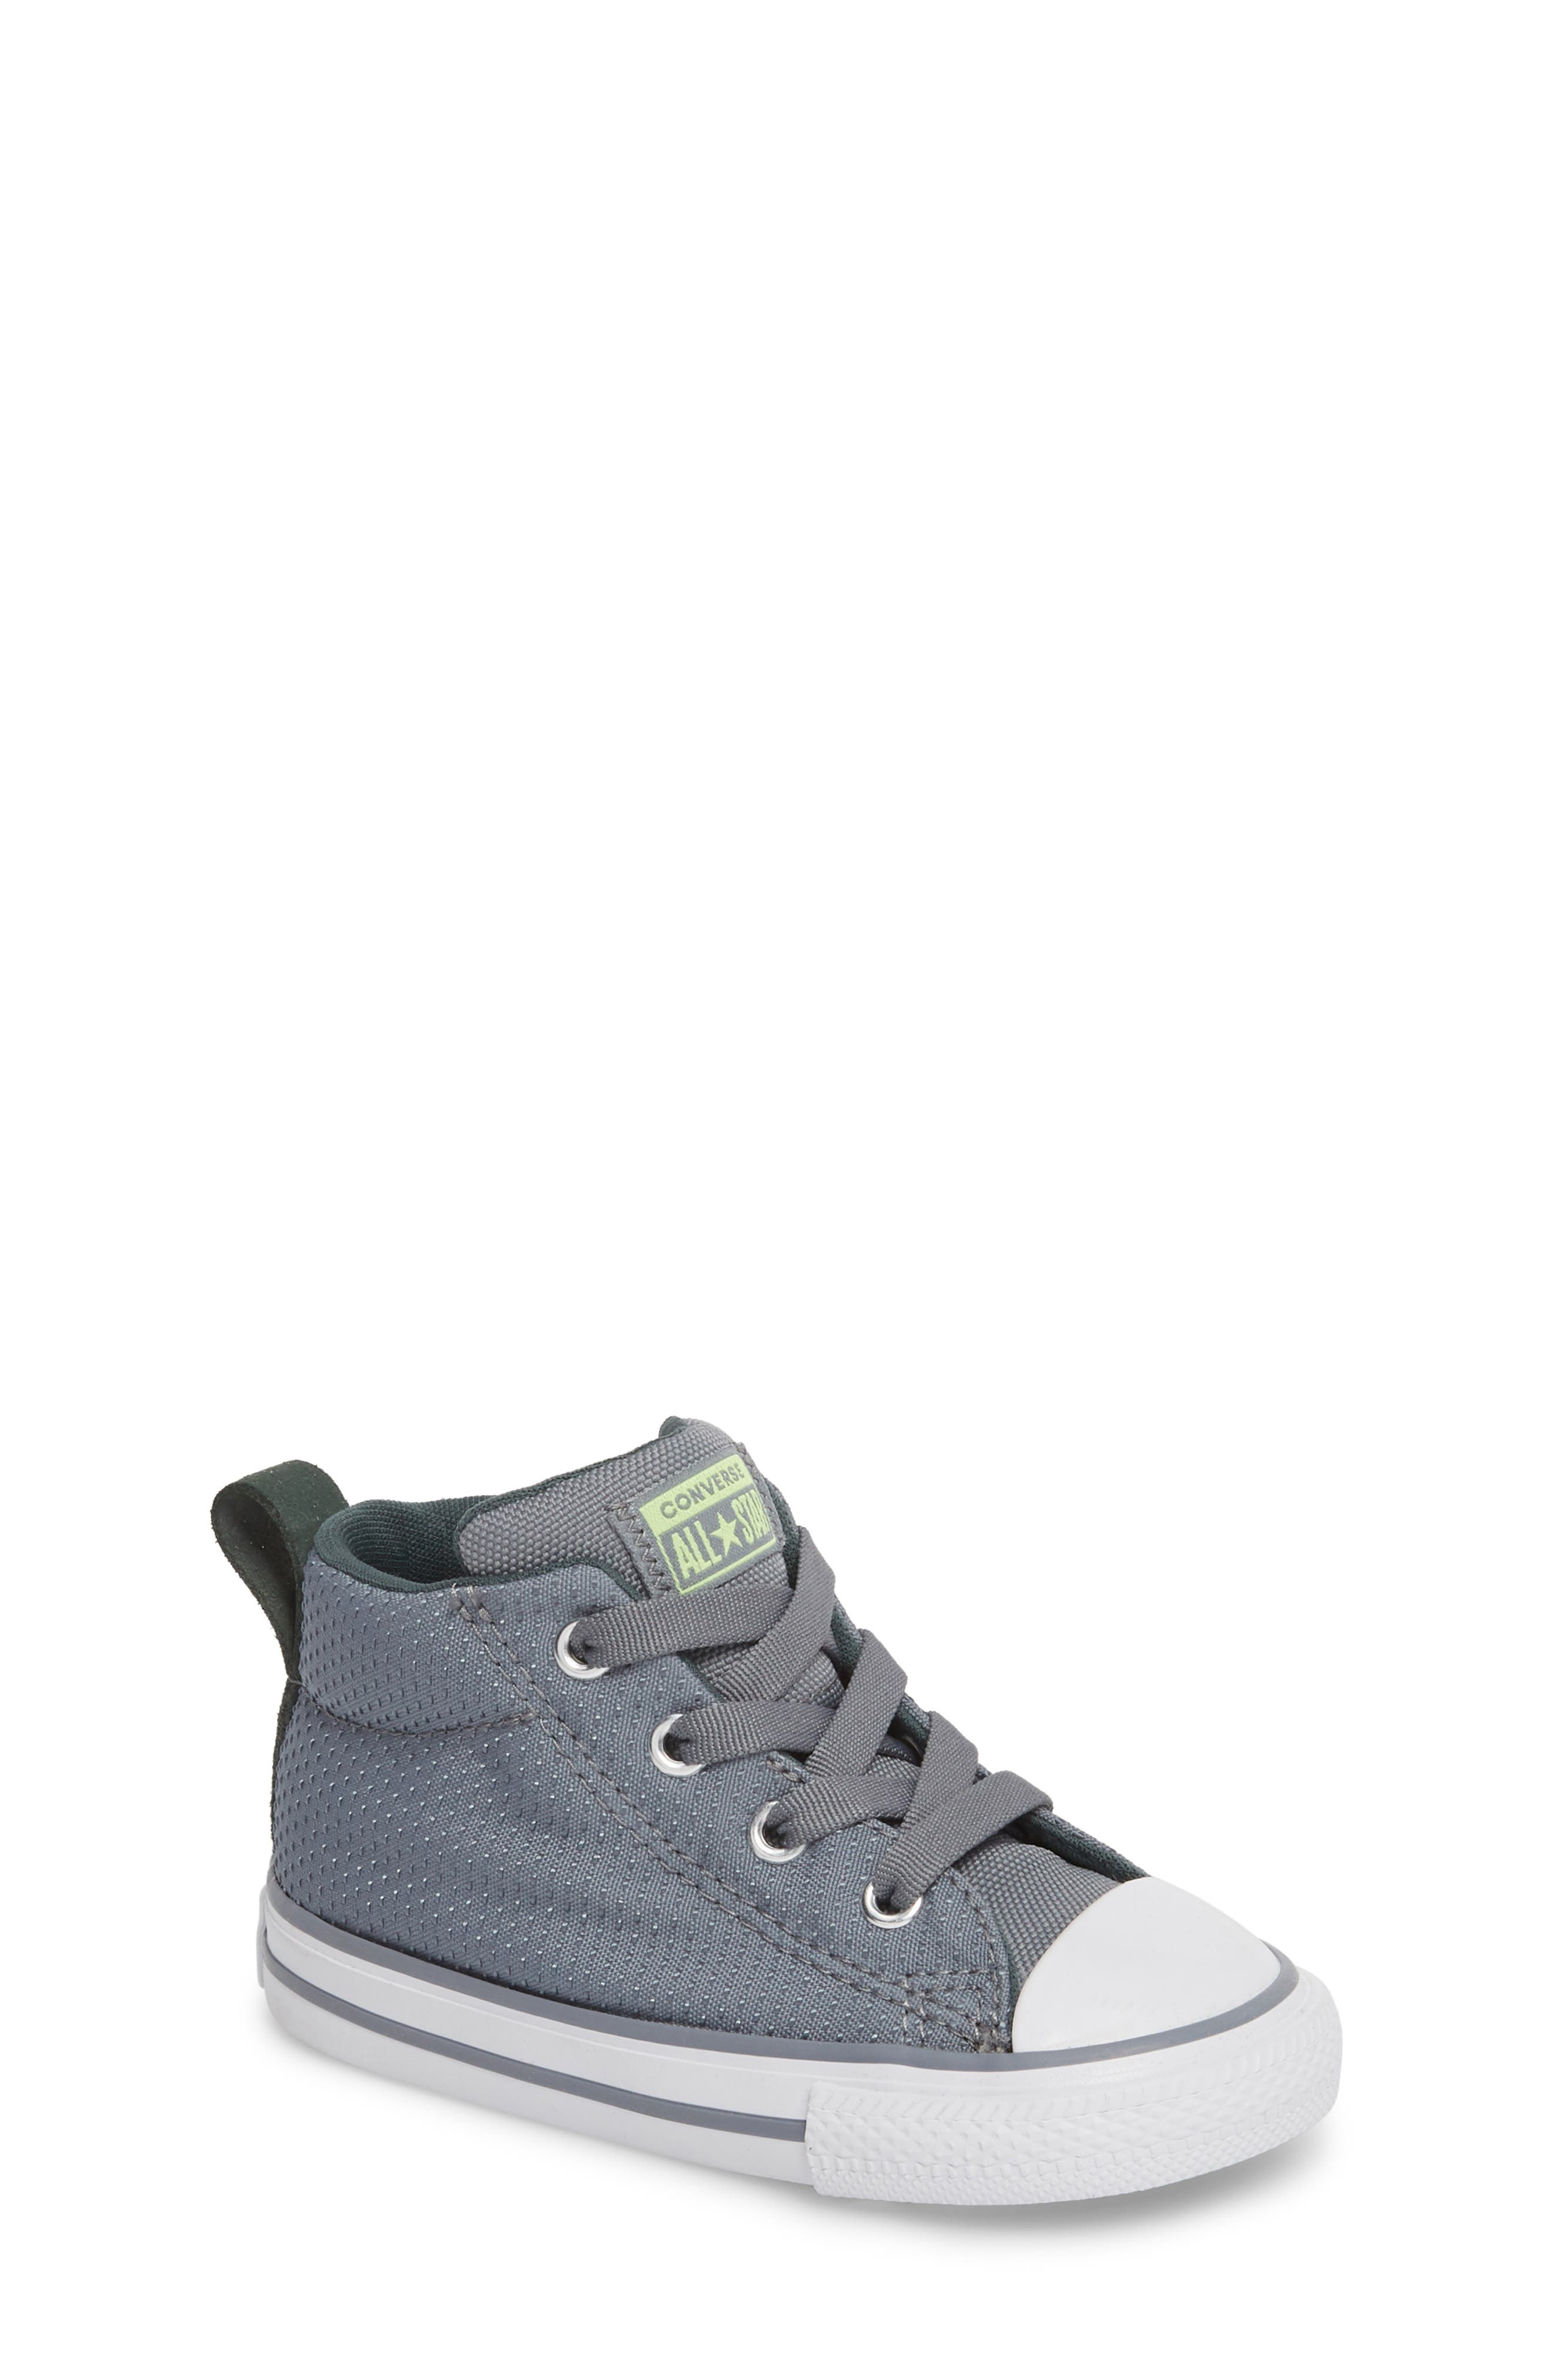 Chuck Taylor<sup>®</sup> All Star<sup>®</sup> Street Mid Top Sneaker,                             Main thumbnail 1, color,                             Pale Grey